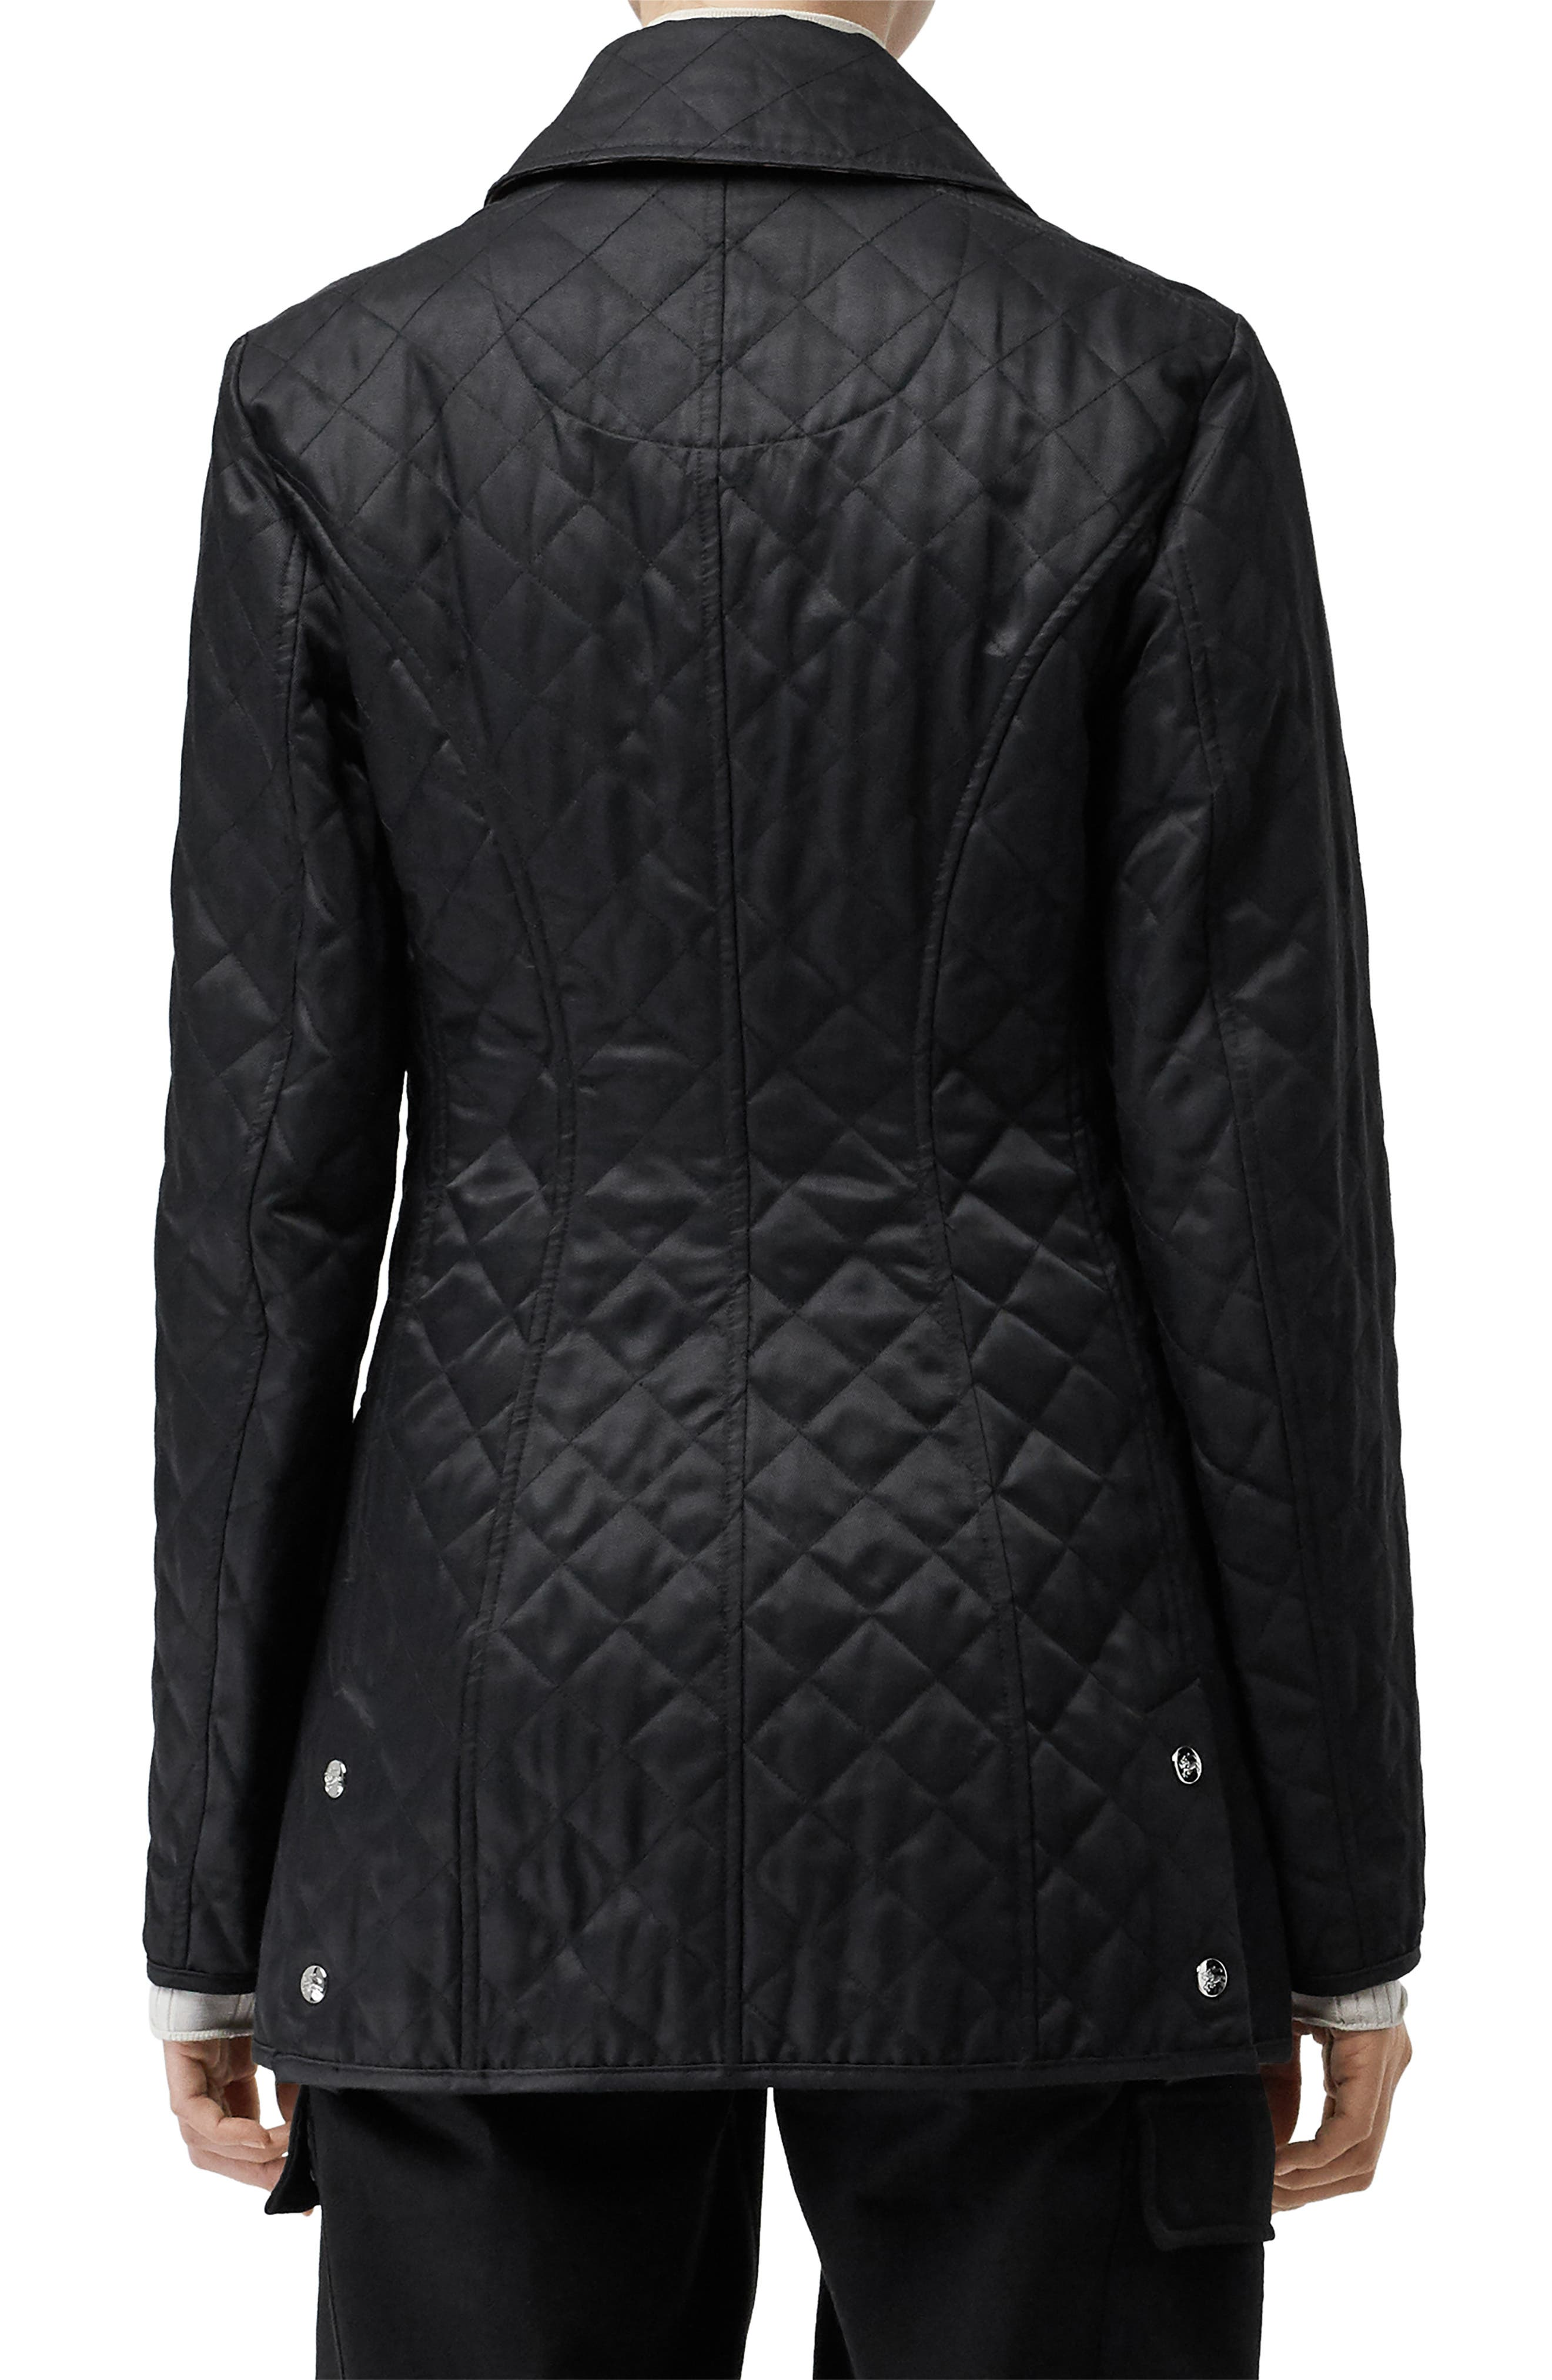 BURBERRY,                             Borthwicke Quilted Jacket,                             Alternate thumbnail 2, color,                             BLACK